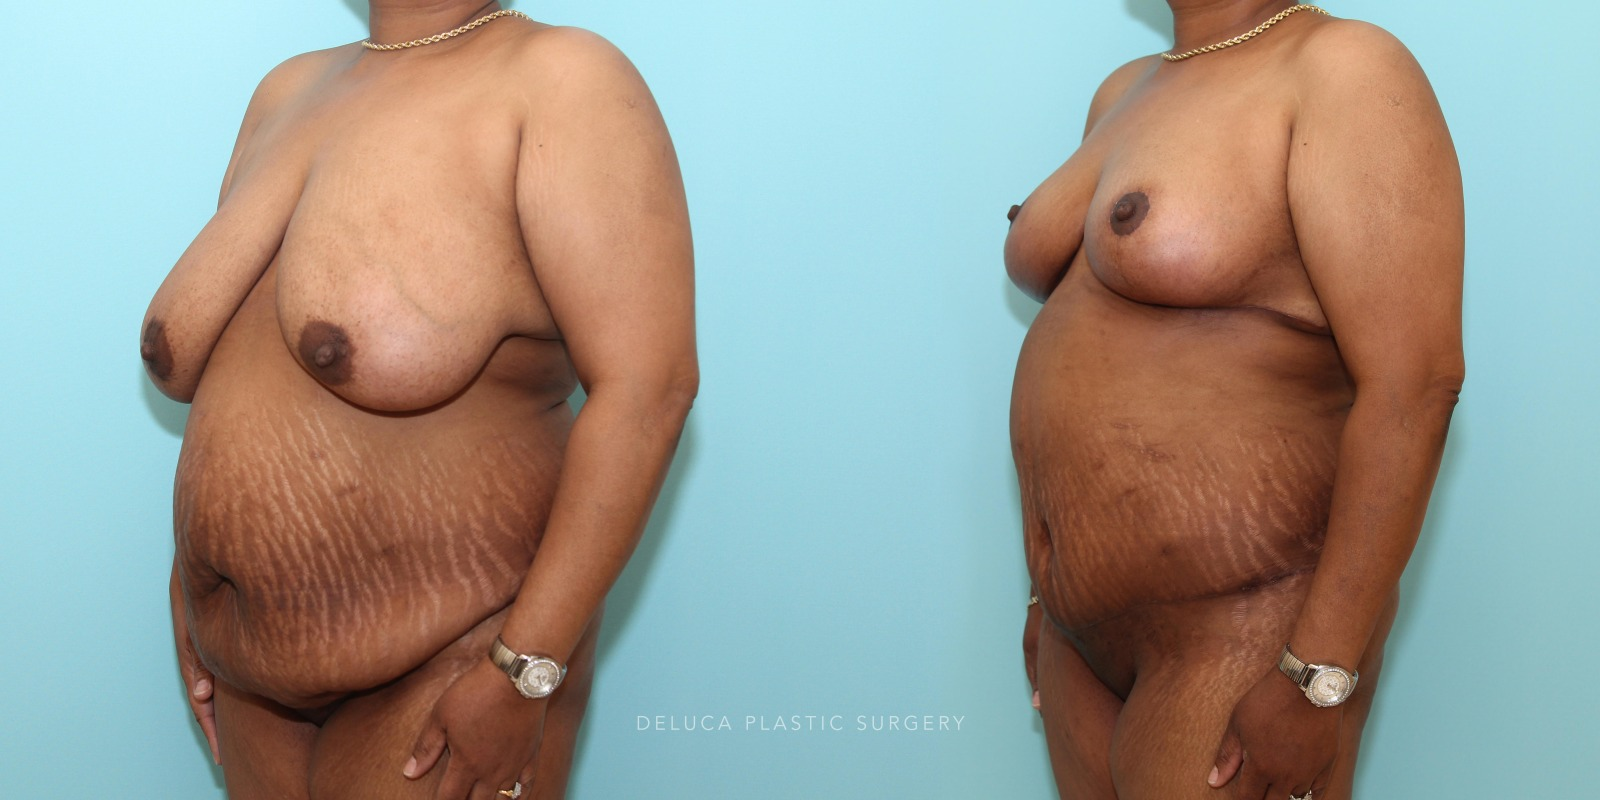 53 year old woman Mommy Makeover - Tummy Tuck (Abdominoplasty) and Inferior Pedicle, Wise Pattern Breast Reduction